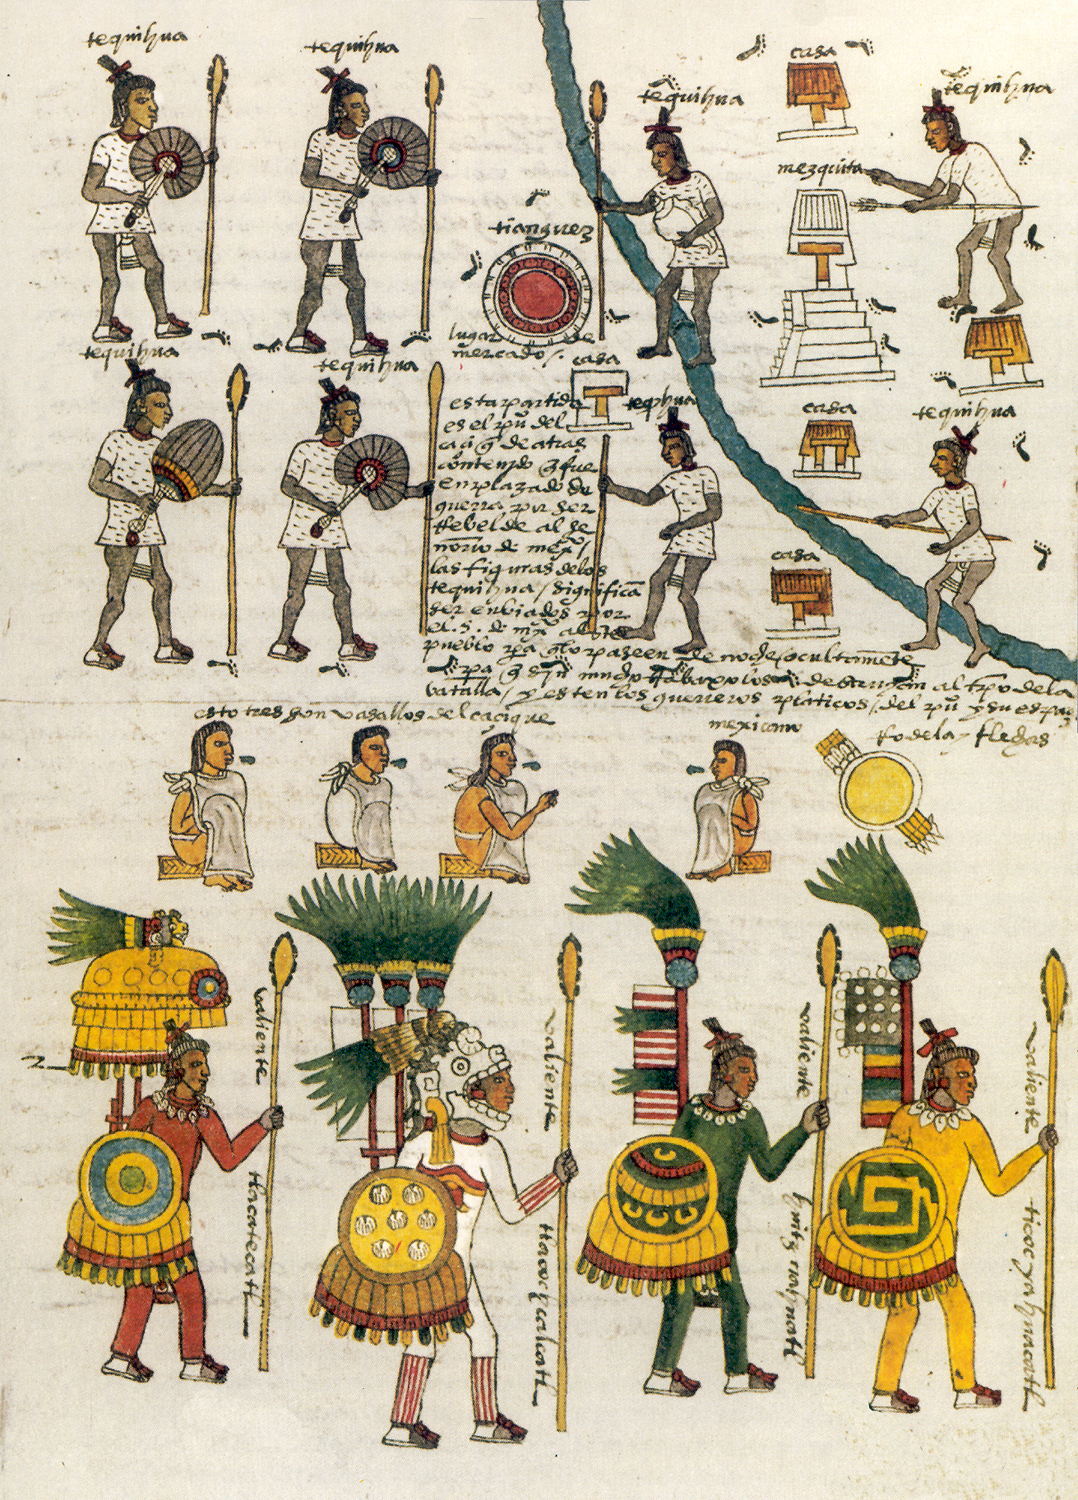 A page (folio 67), depicting natives Mexican warriors in the Codex Mendoza.